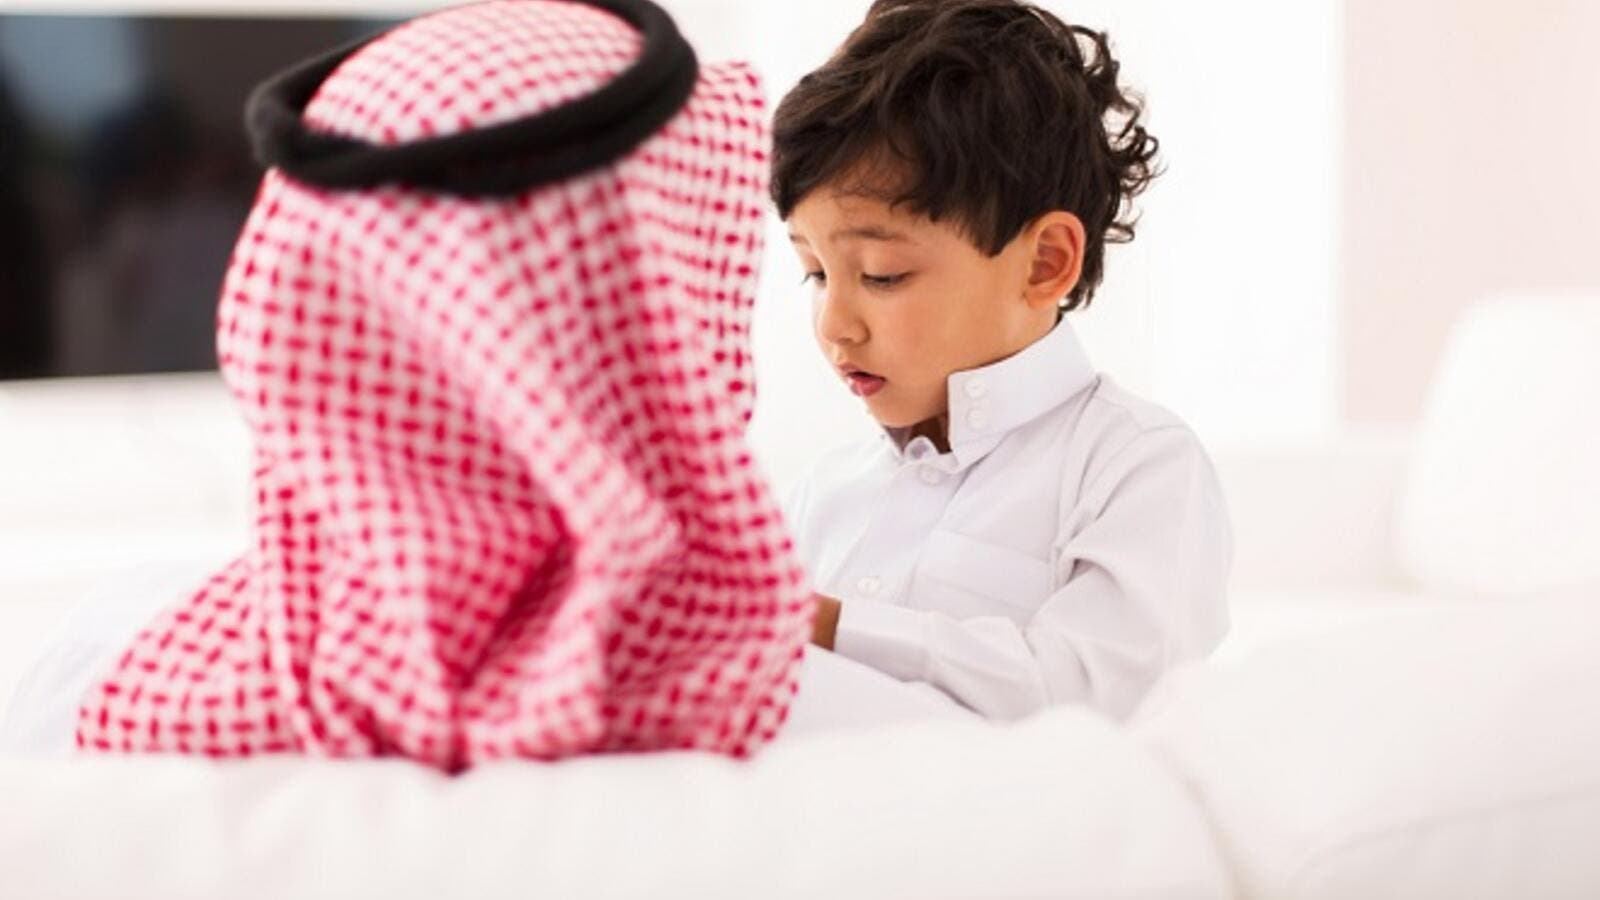 Children of Saudi families spend an average of four hours daily on smart devices, according to a recent survey. (Shutterstock)